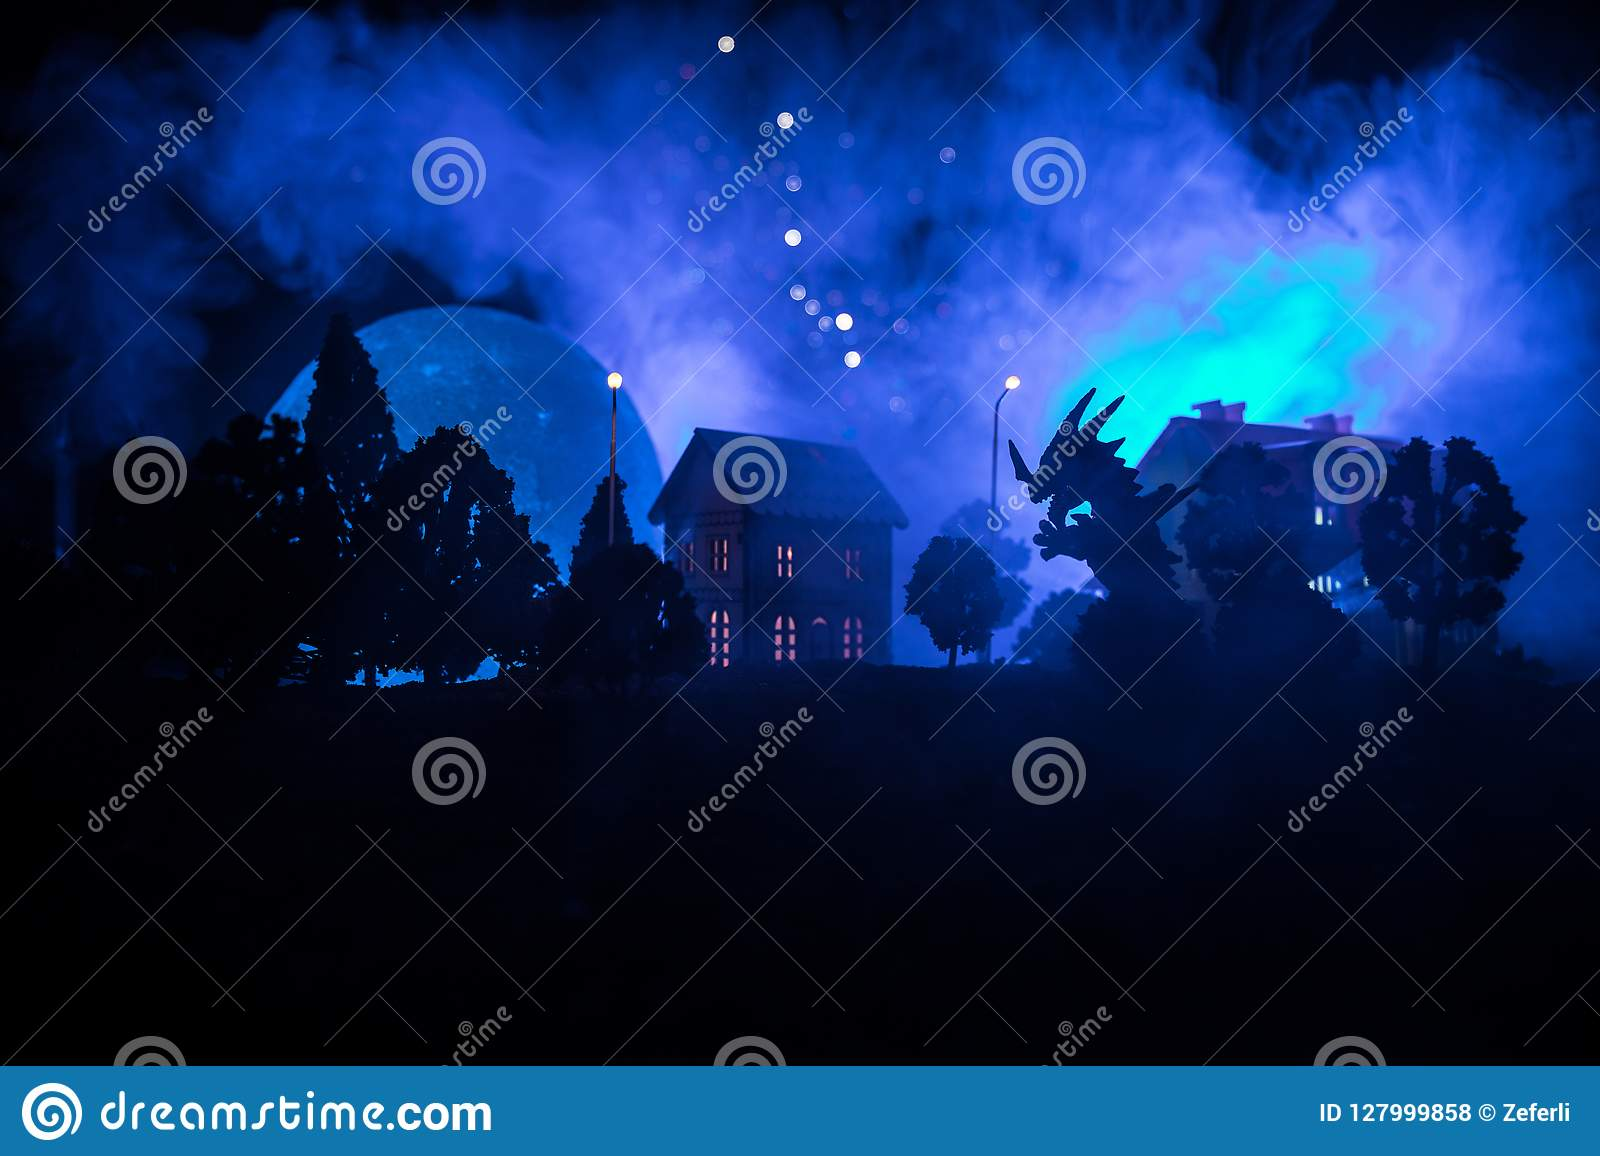 Little decorative houses, beautiful festive still life, cute small houses at night, pine trees glowing lights, happy winter holida